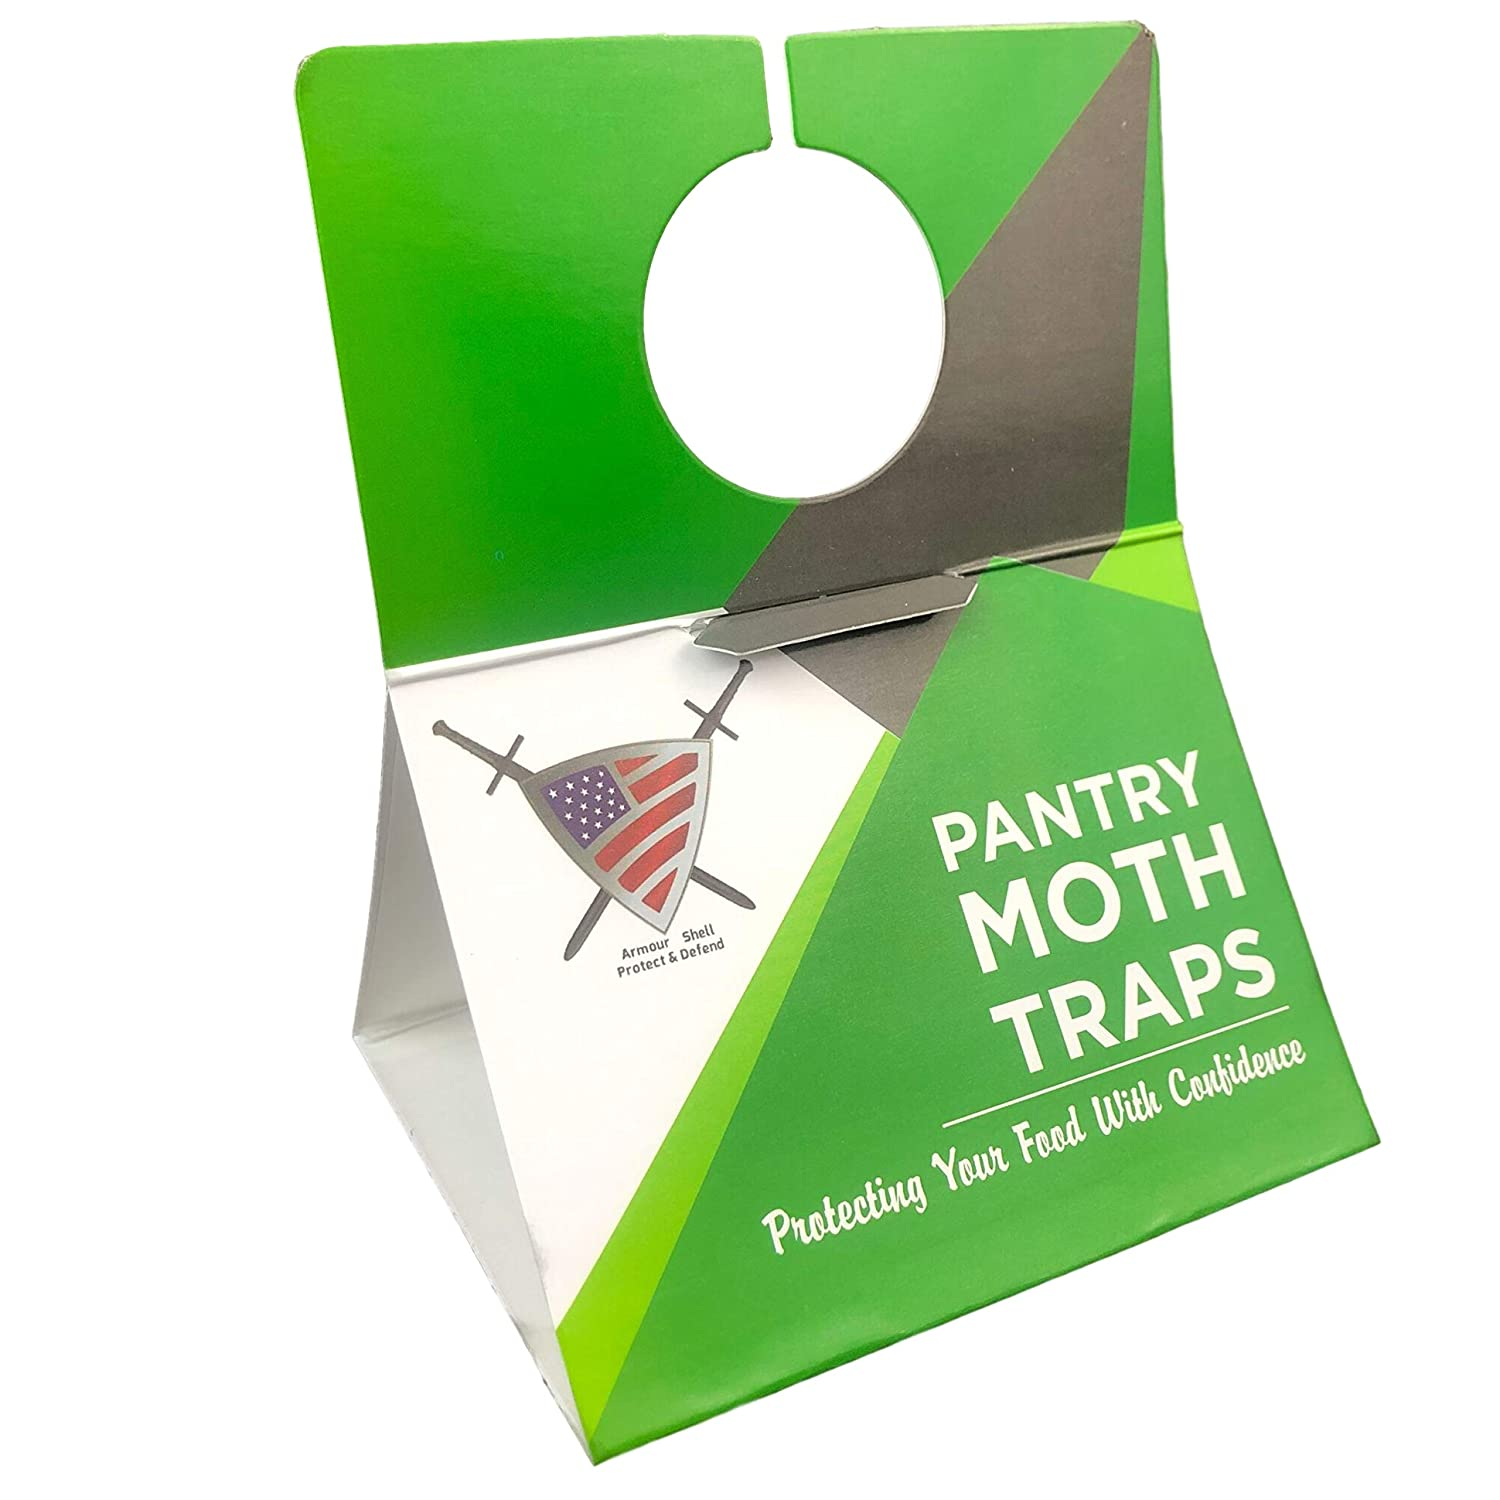 Pantry Moth Traps with Pheromones - Pest Trap for Kitchen Closet, Eco Friendly Moth Repellent Killer 6 Pack with Unique Hanging Design Non Toxic Formula That is Safe for Your Family and Long Lasting.